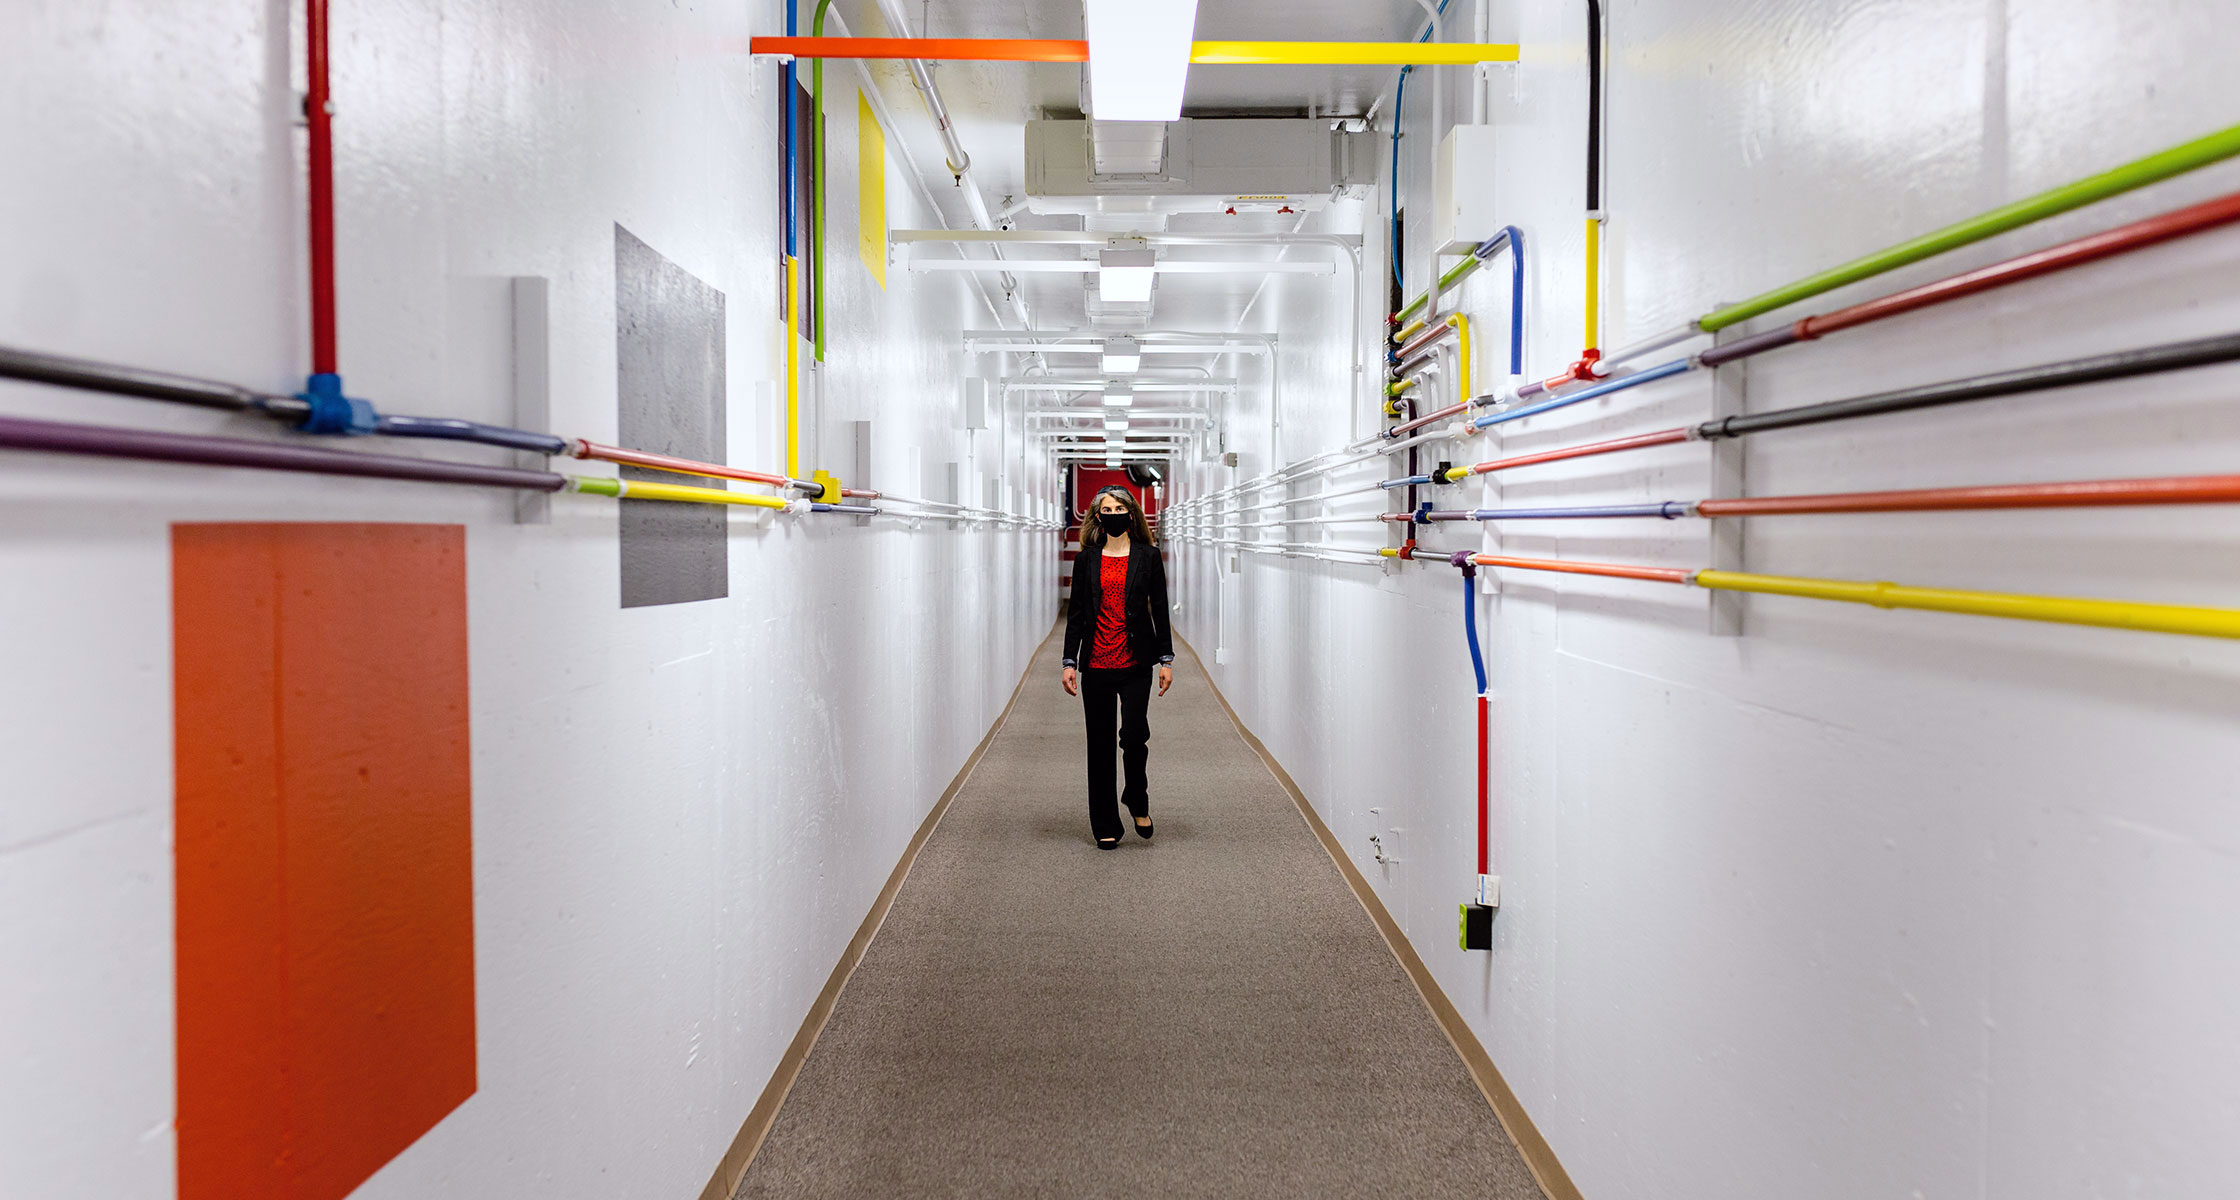 A woman walks down a white corridor with colorful pipes running down the walls.